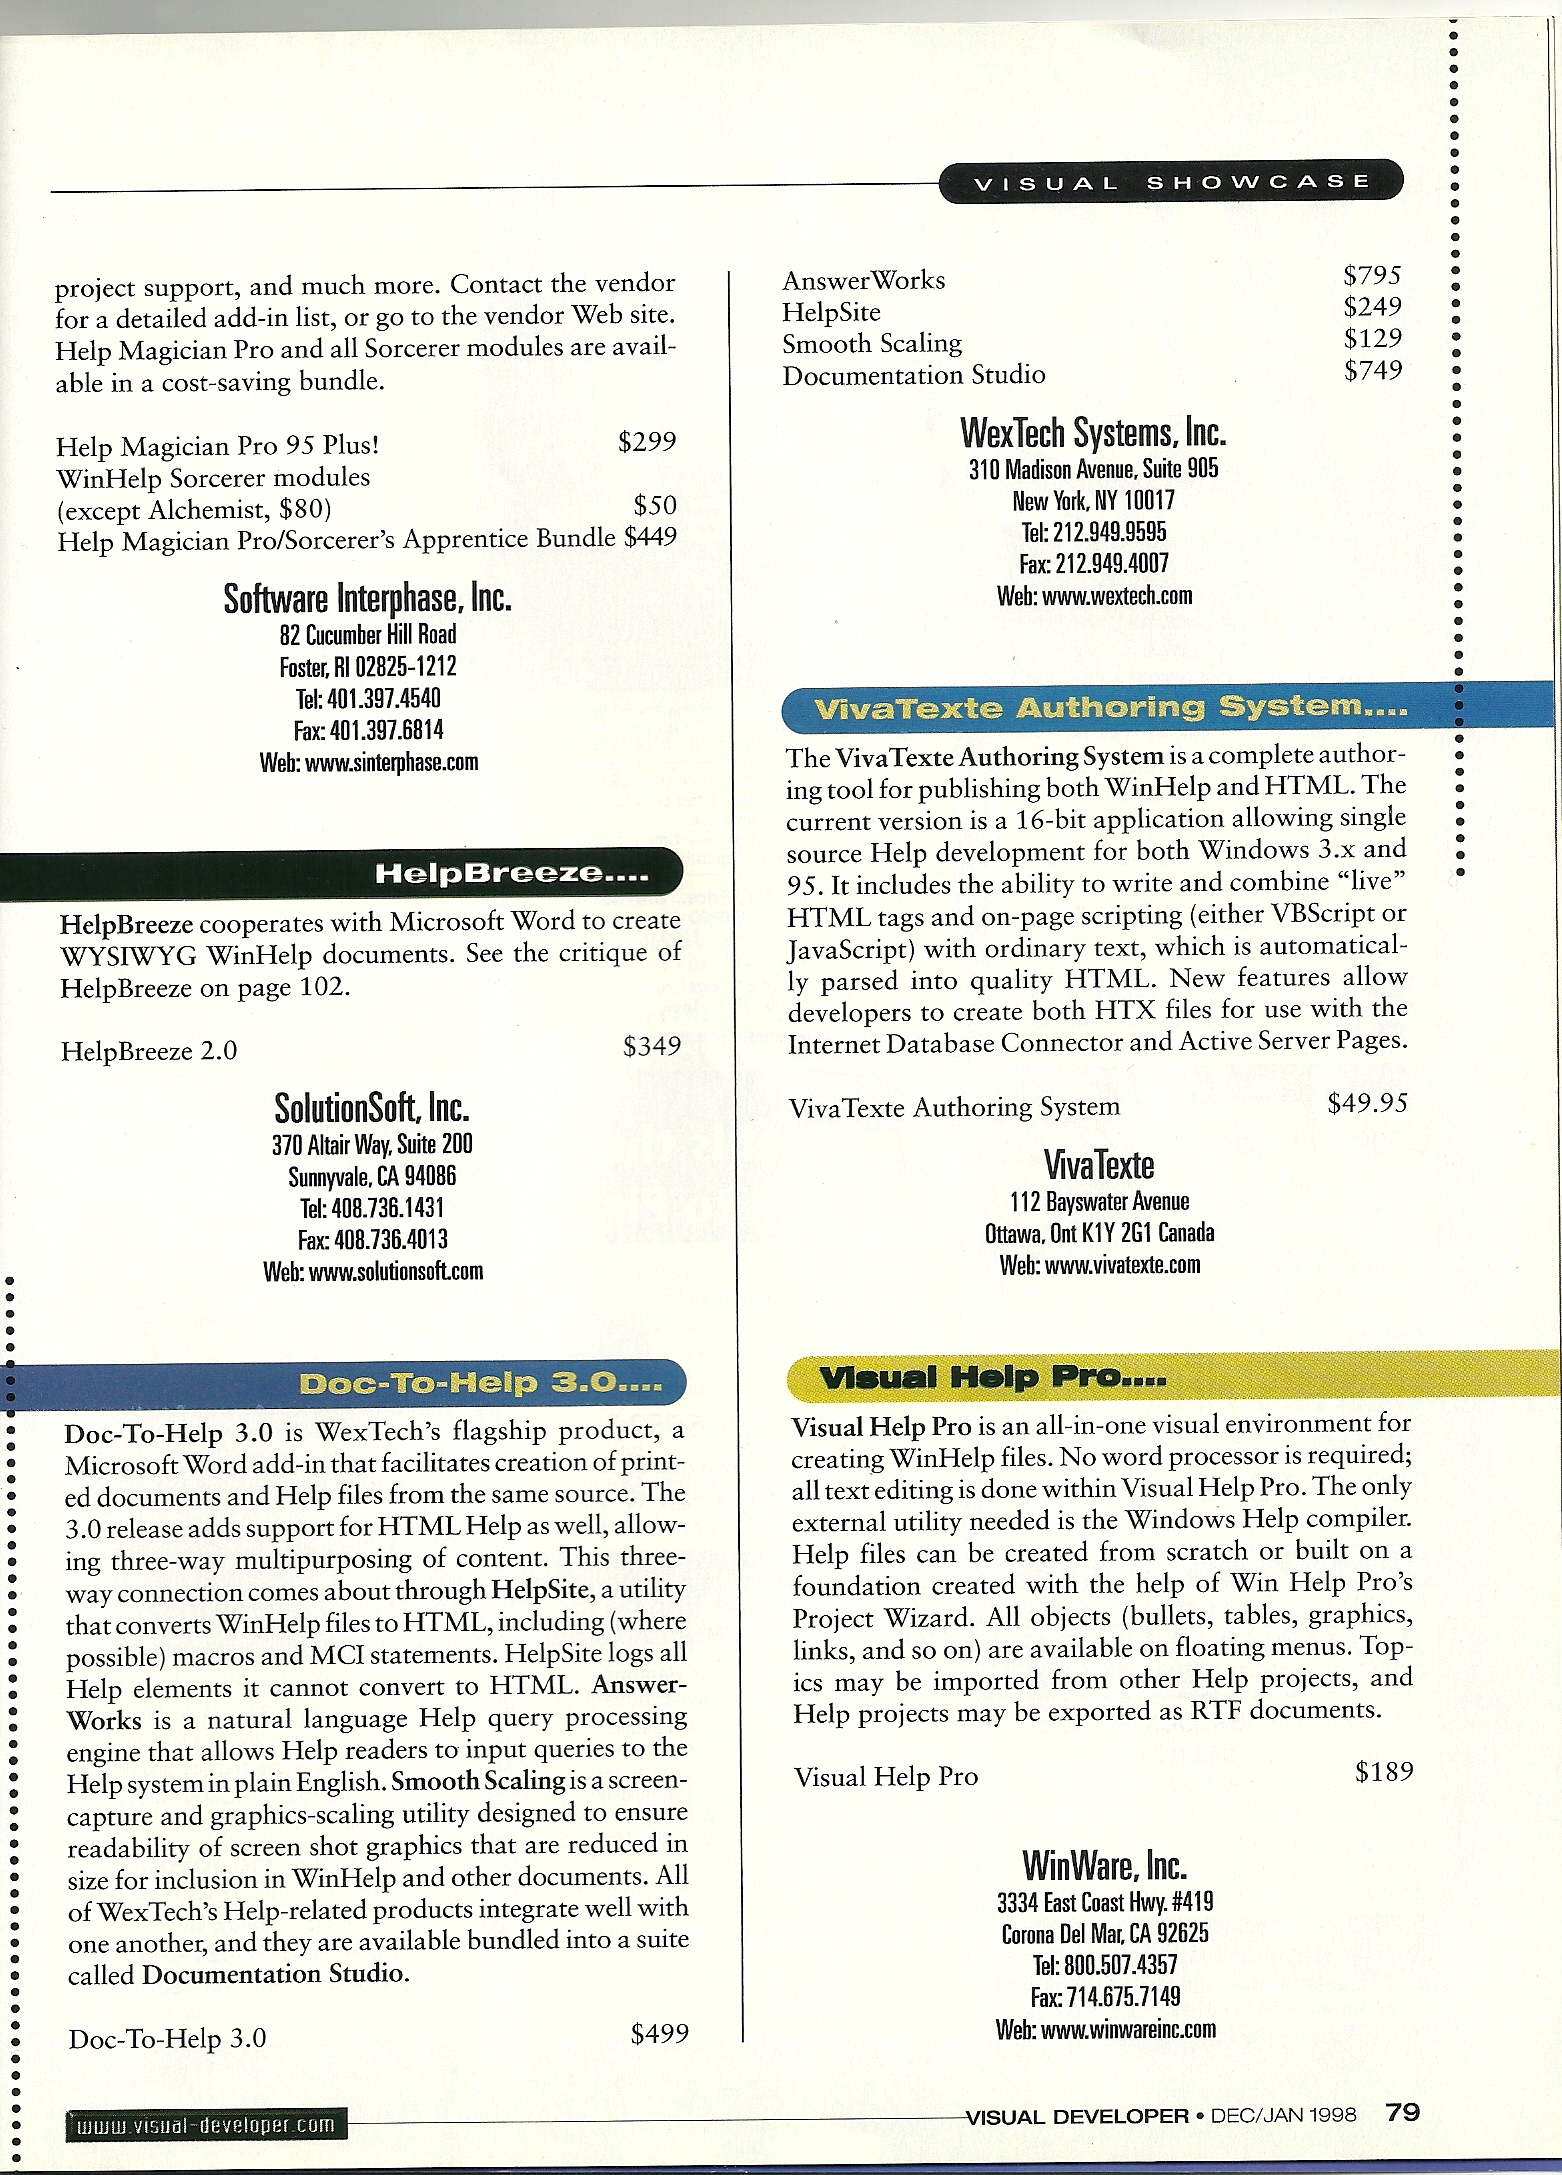 Visual Showcase of Help Authoring Tools, Jan '98, 2 of 2